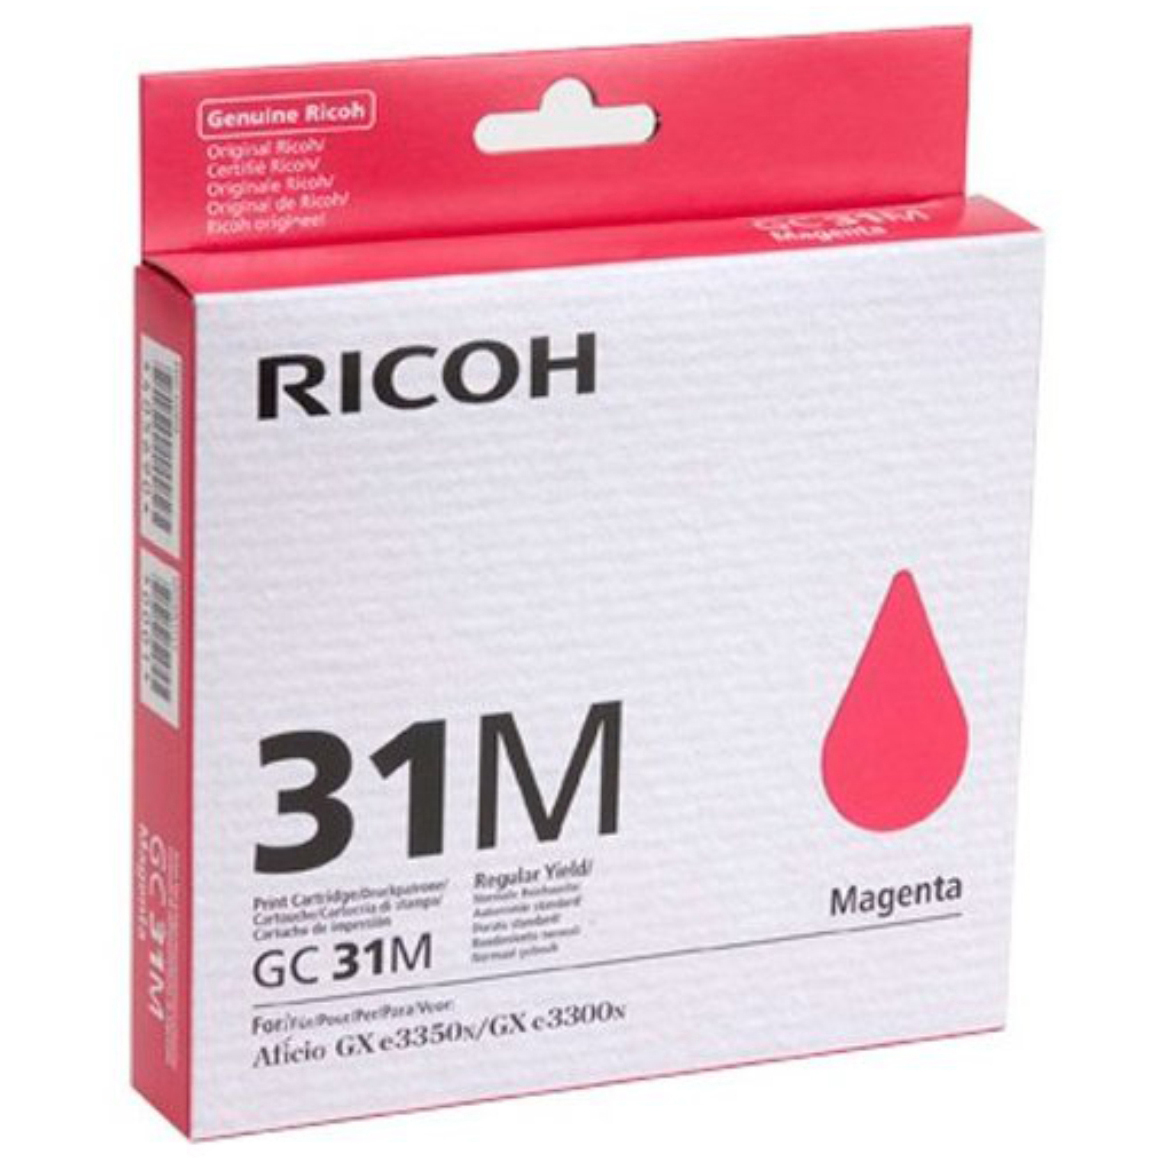 Original Ricoh GC31M Magenta Gel Ink Cartridge (405690)